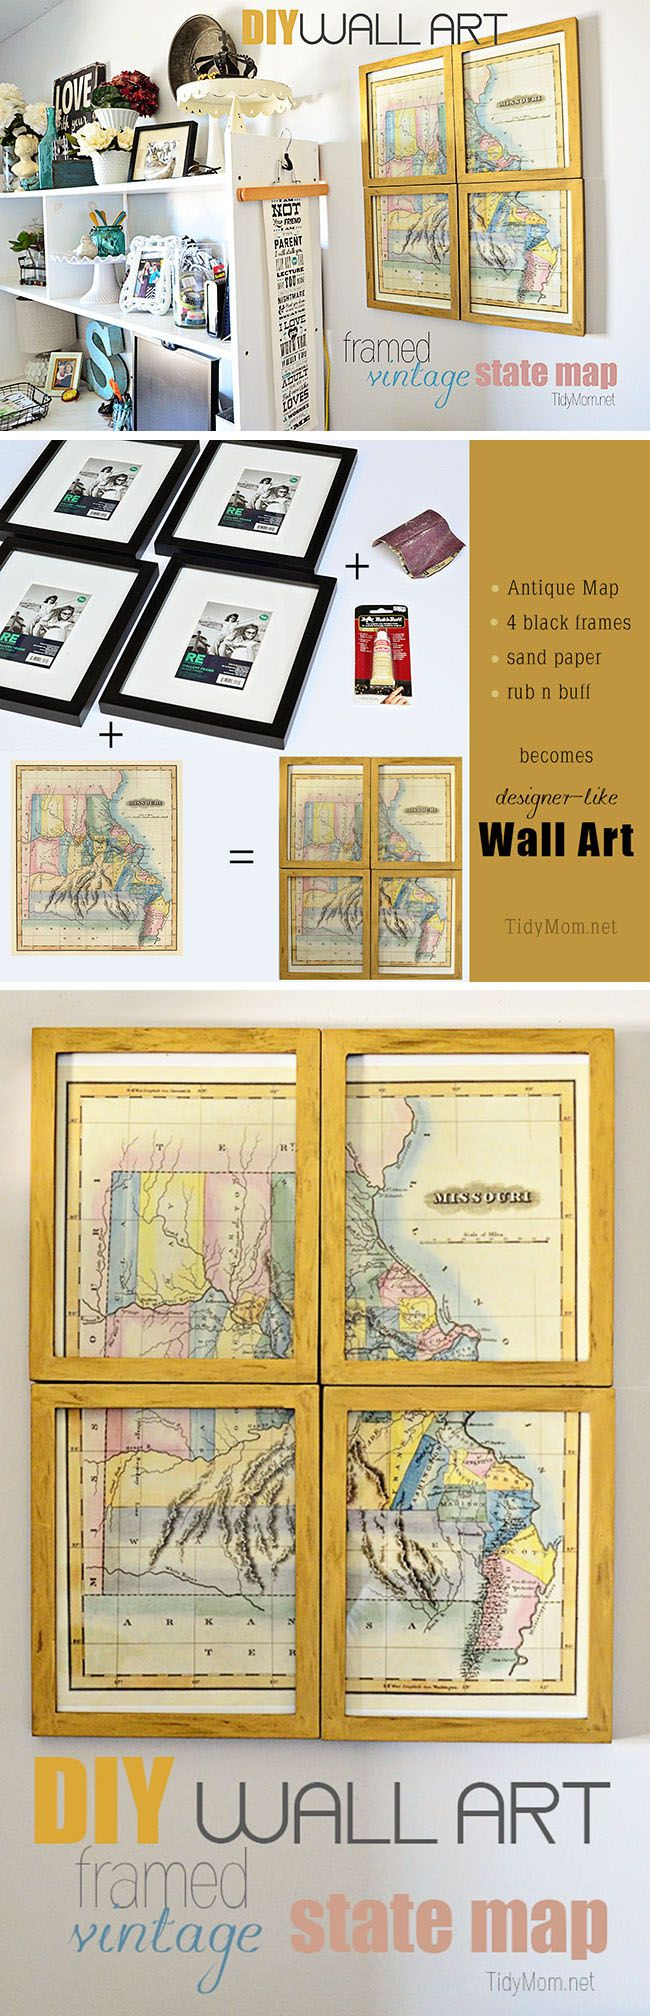 304 best DIY Art, Mirrors, & Wall Decor images on Pinterest ...